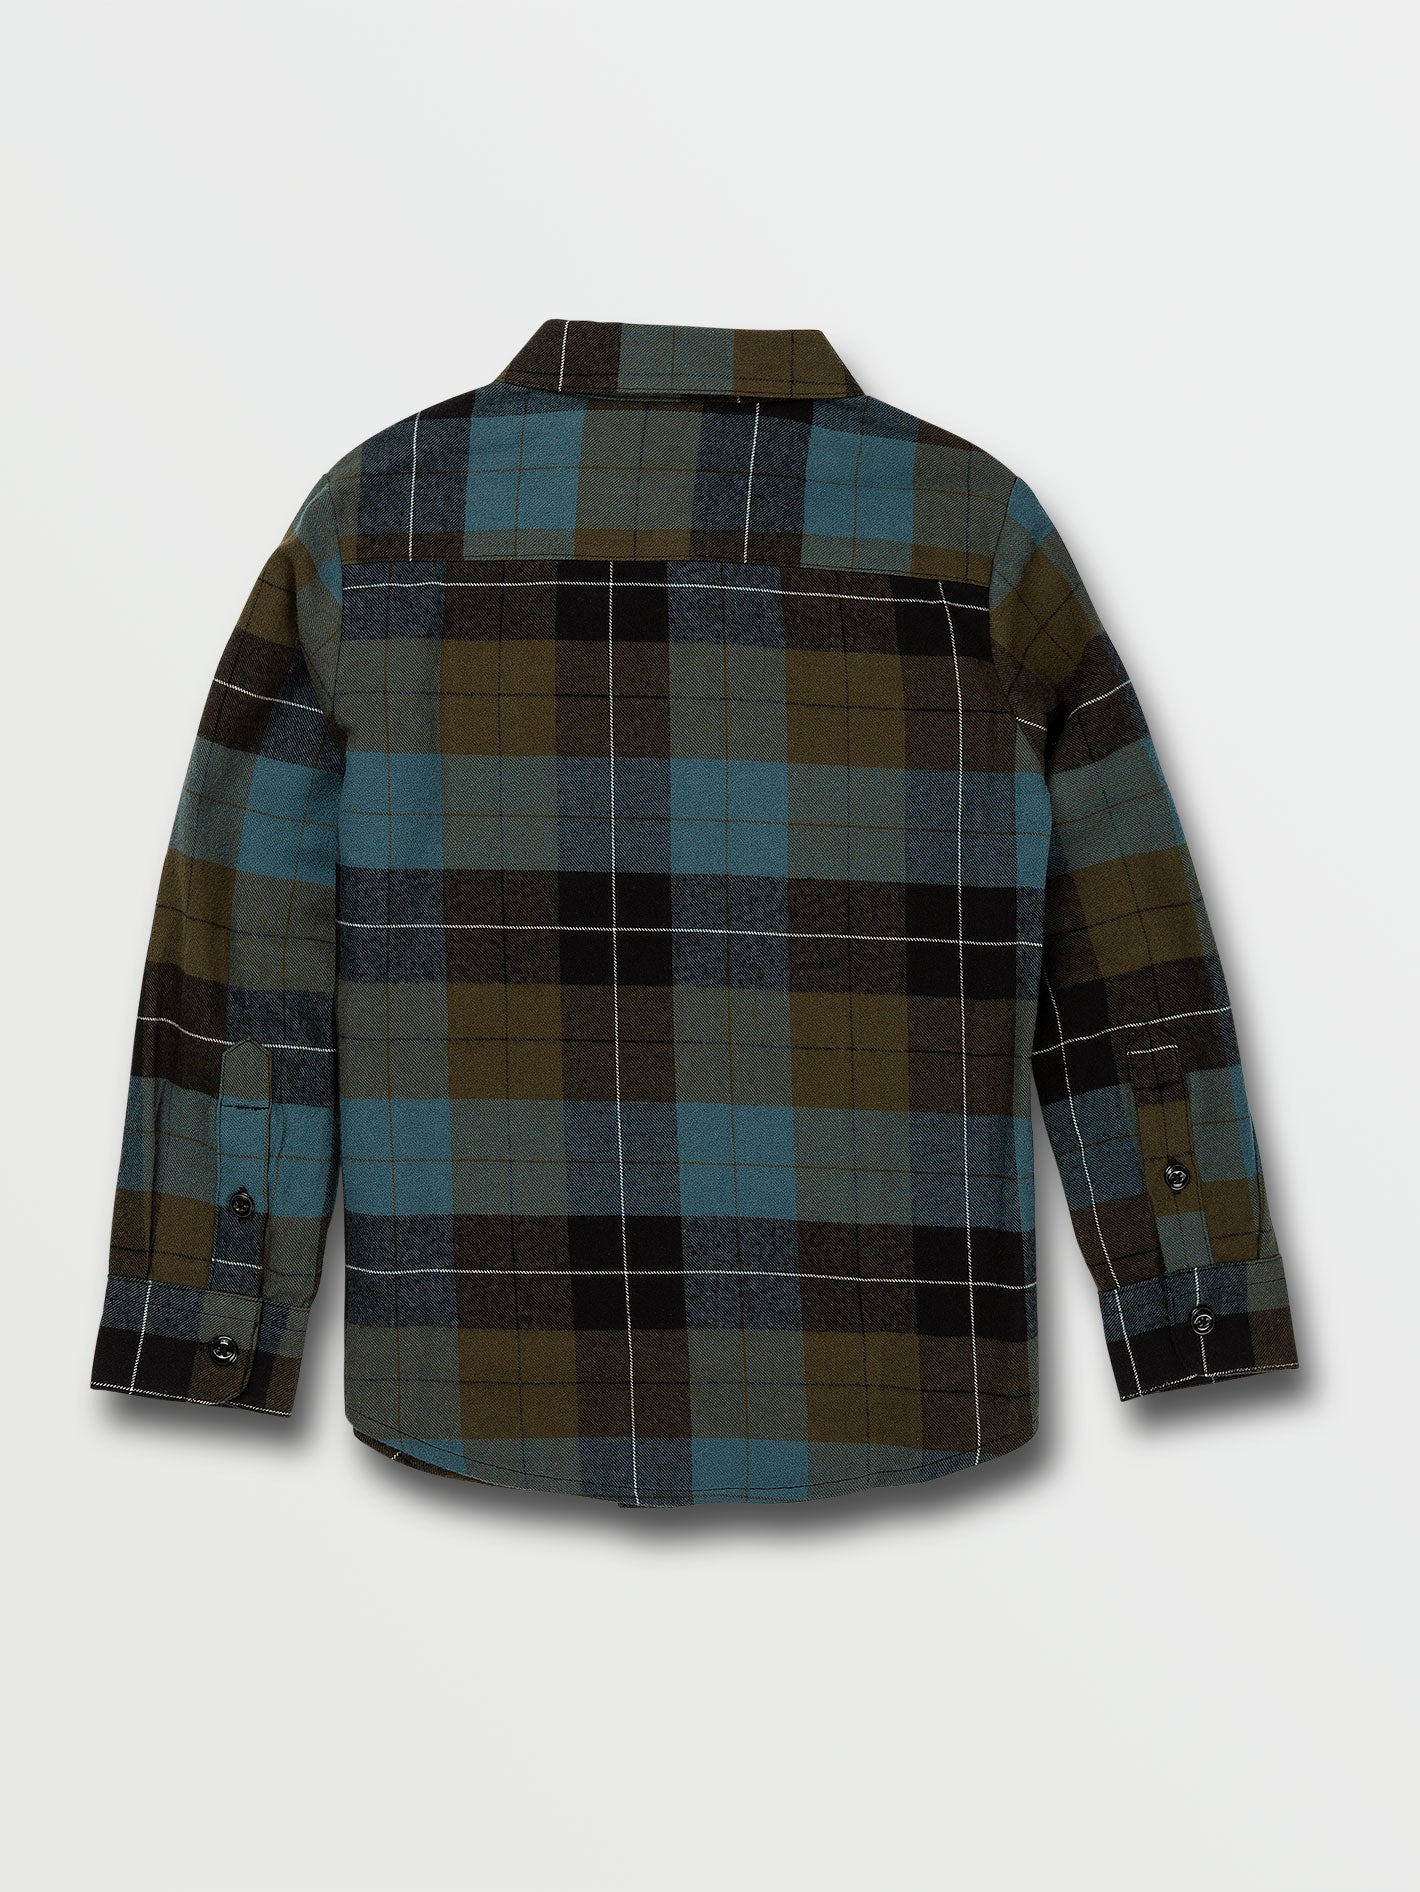 Fatigue//Green,Size 10 Avalanche Toddler Boys Long Sleeve Flannel Plaid Shirt with Twill Cargo Pants 2-Piece Set